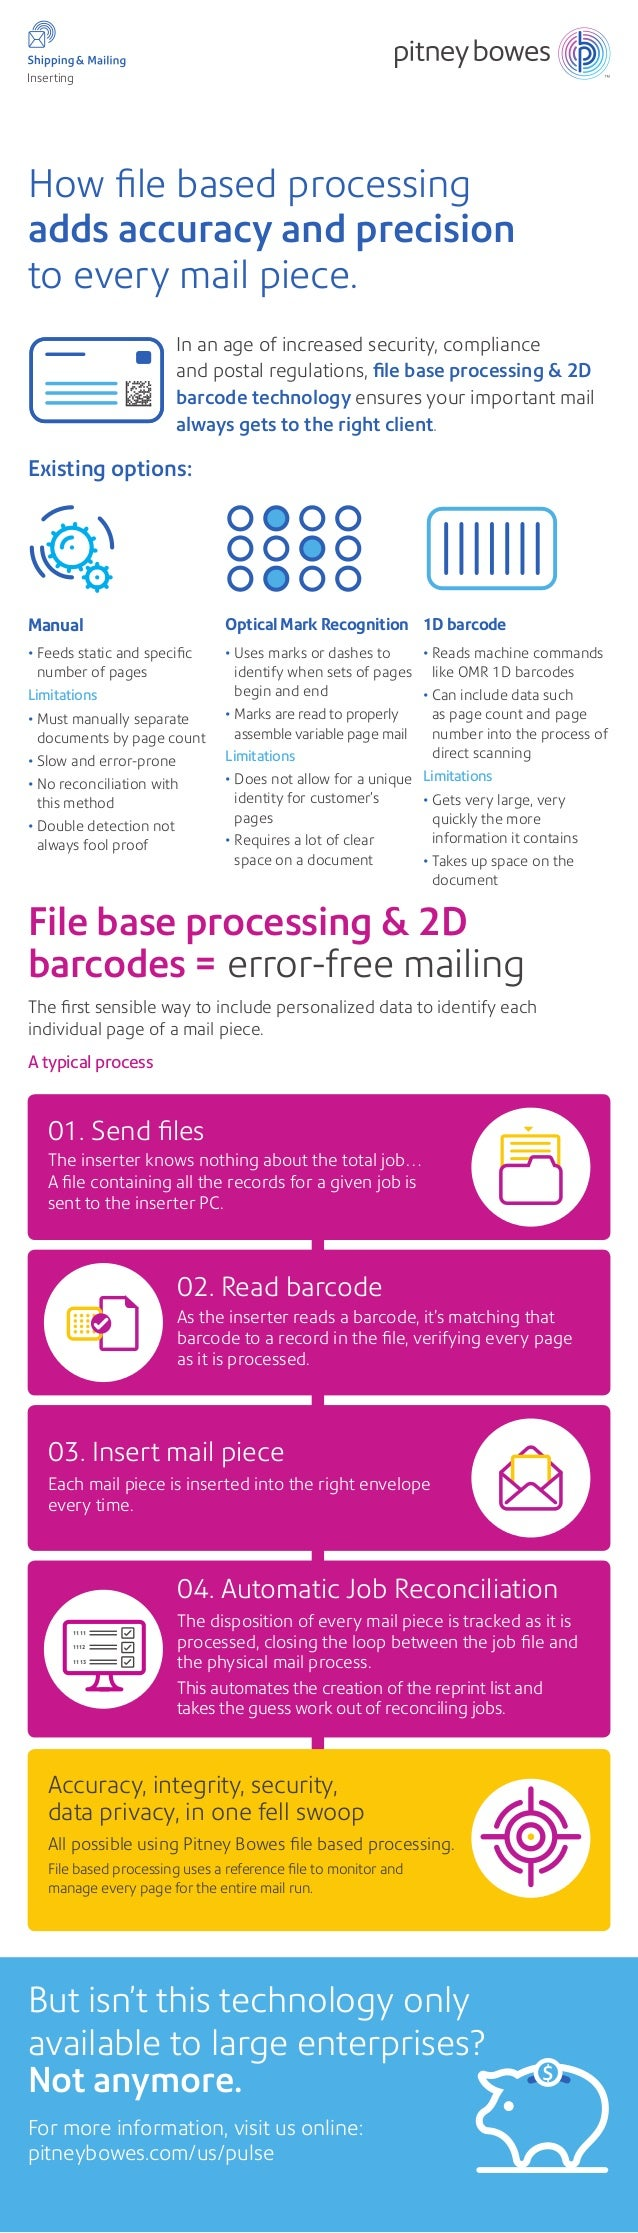 In an age of increased security, compliance and postal regulations, file base processing & 2D barcode technology ensures y...